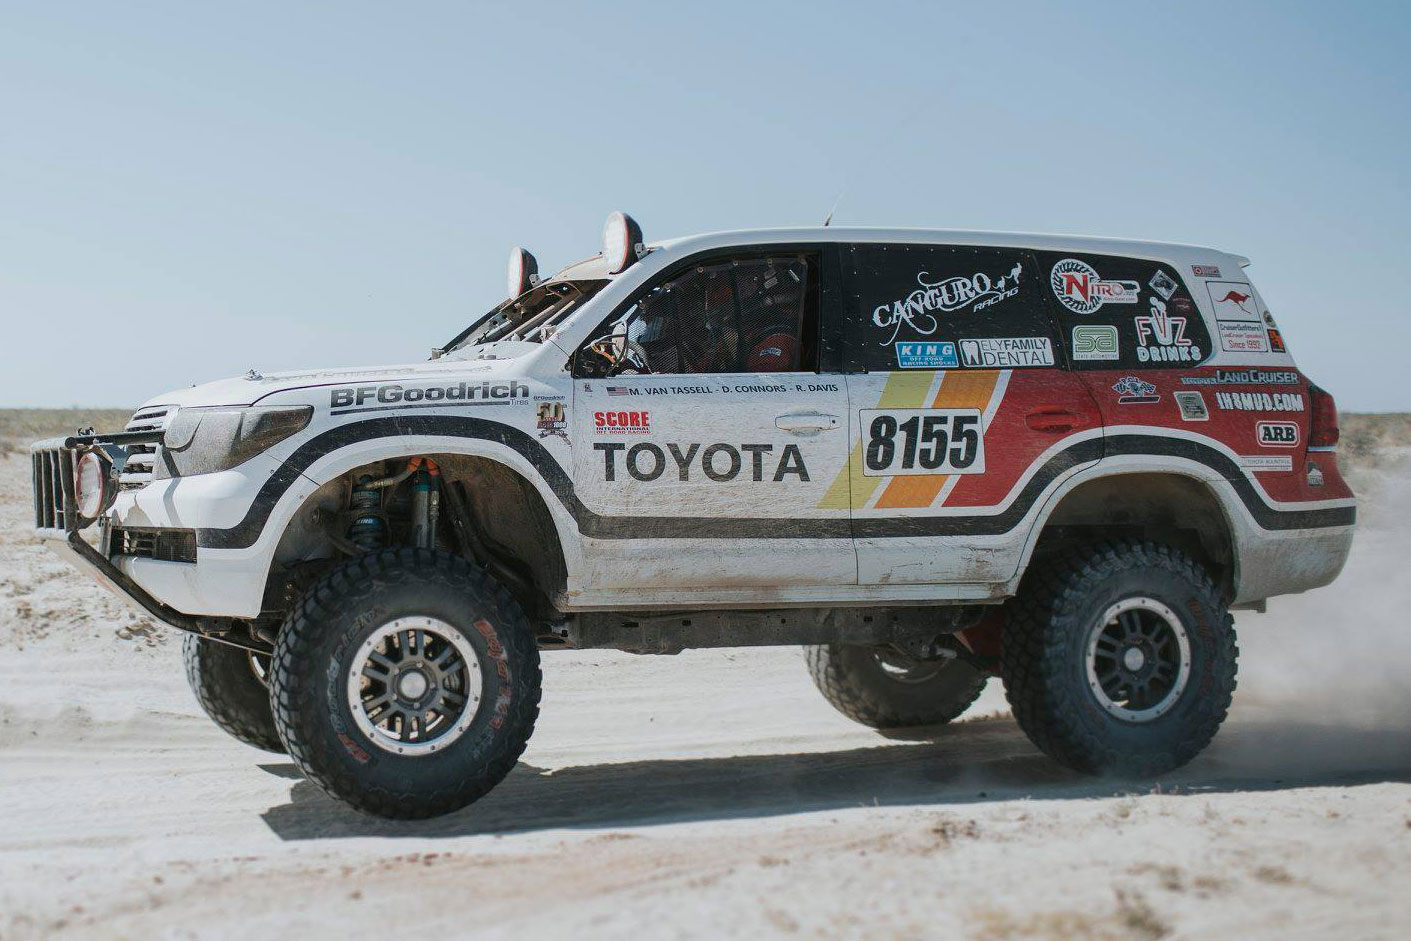 Canguro Racing Toyota Land Cruiser 200 Series